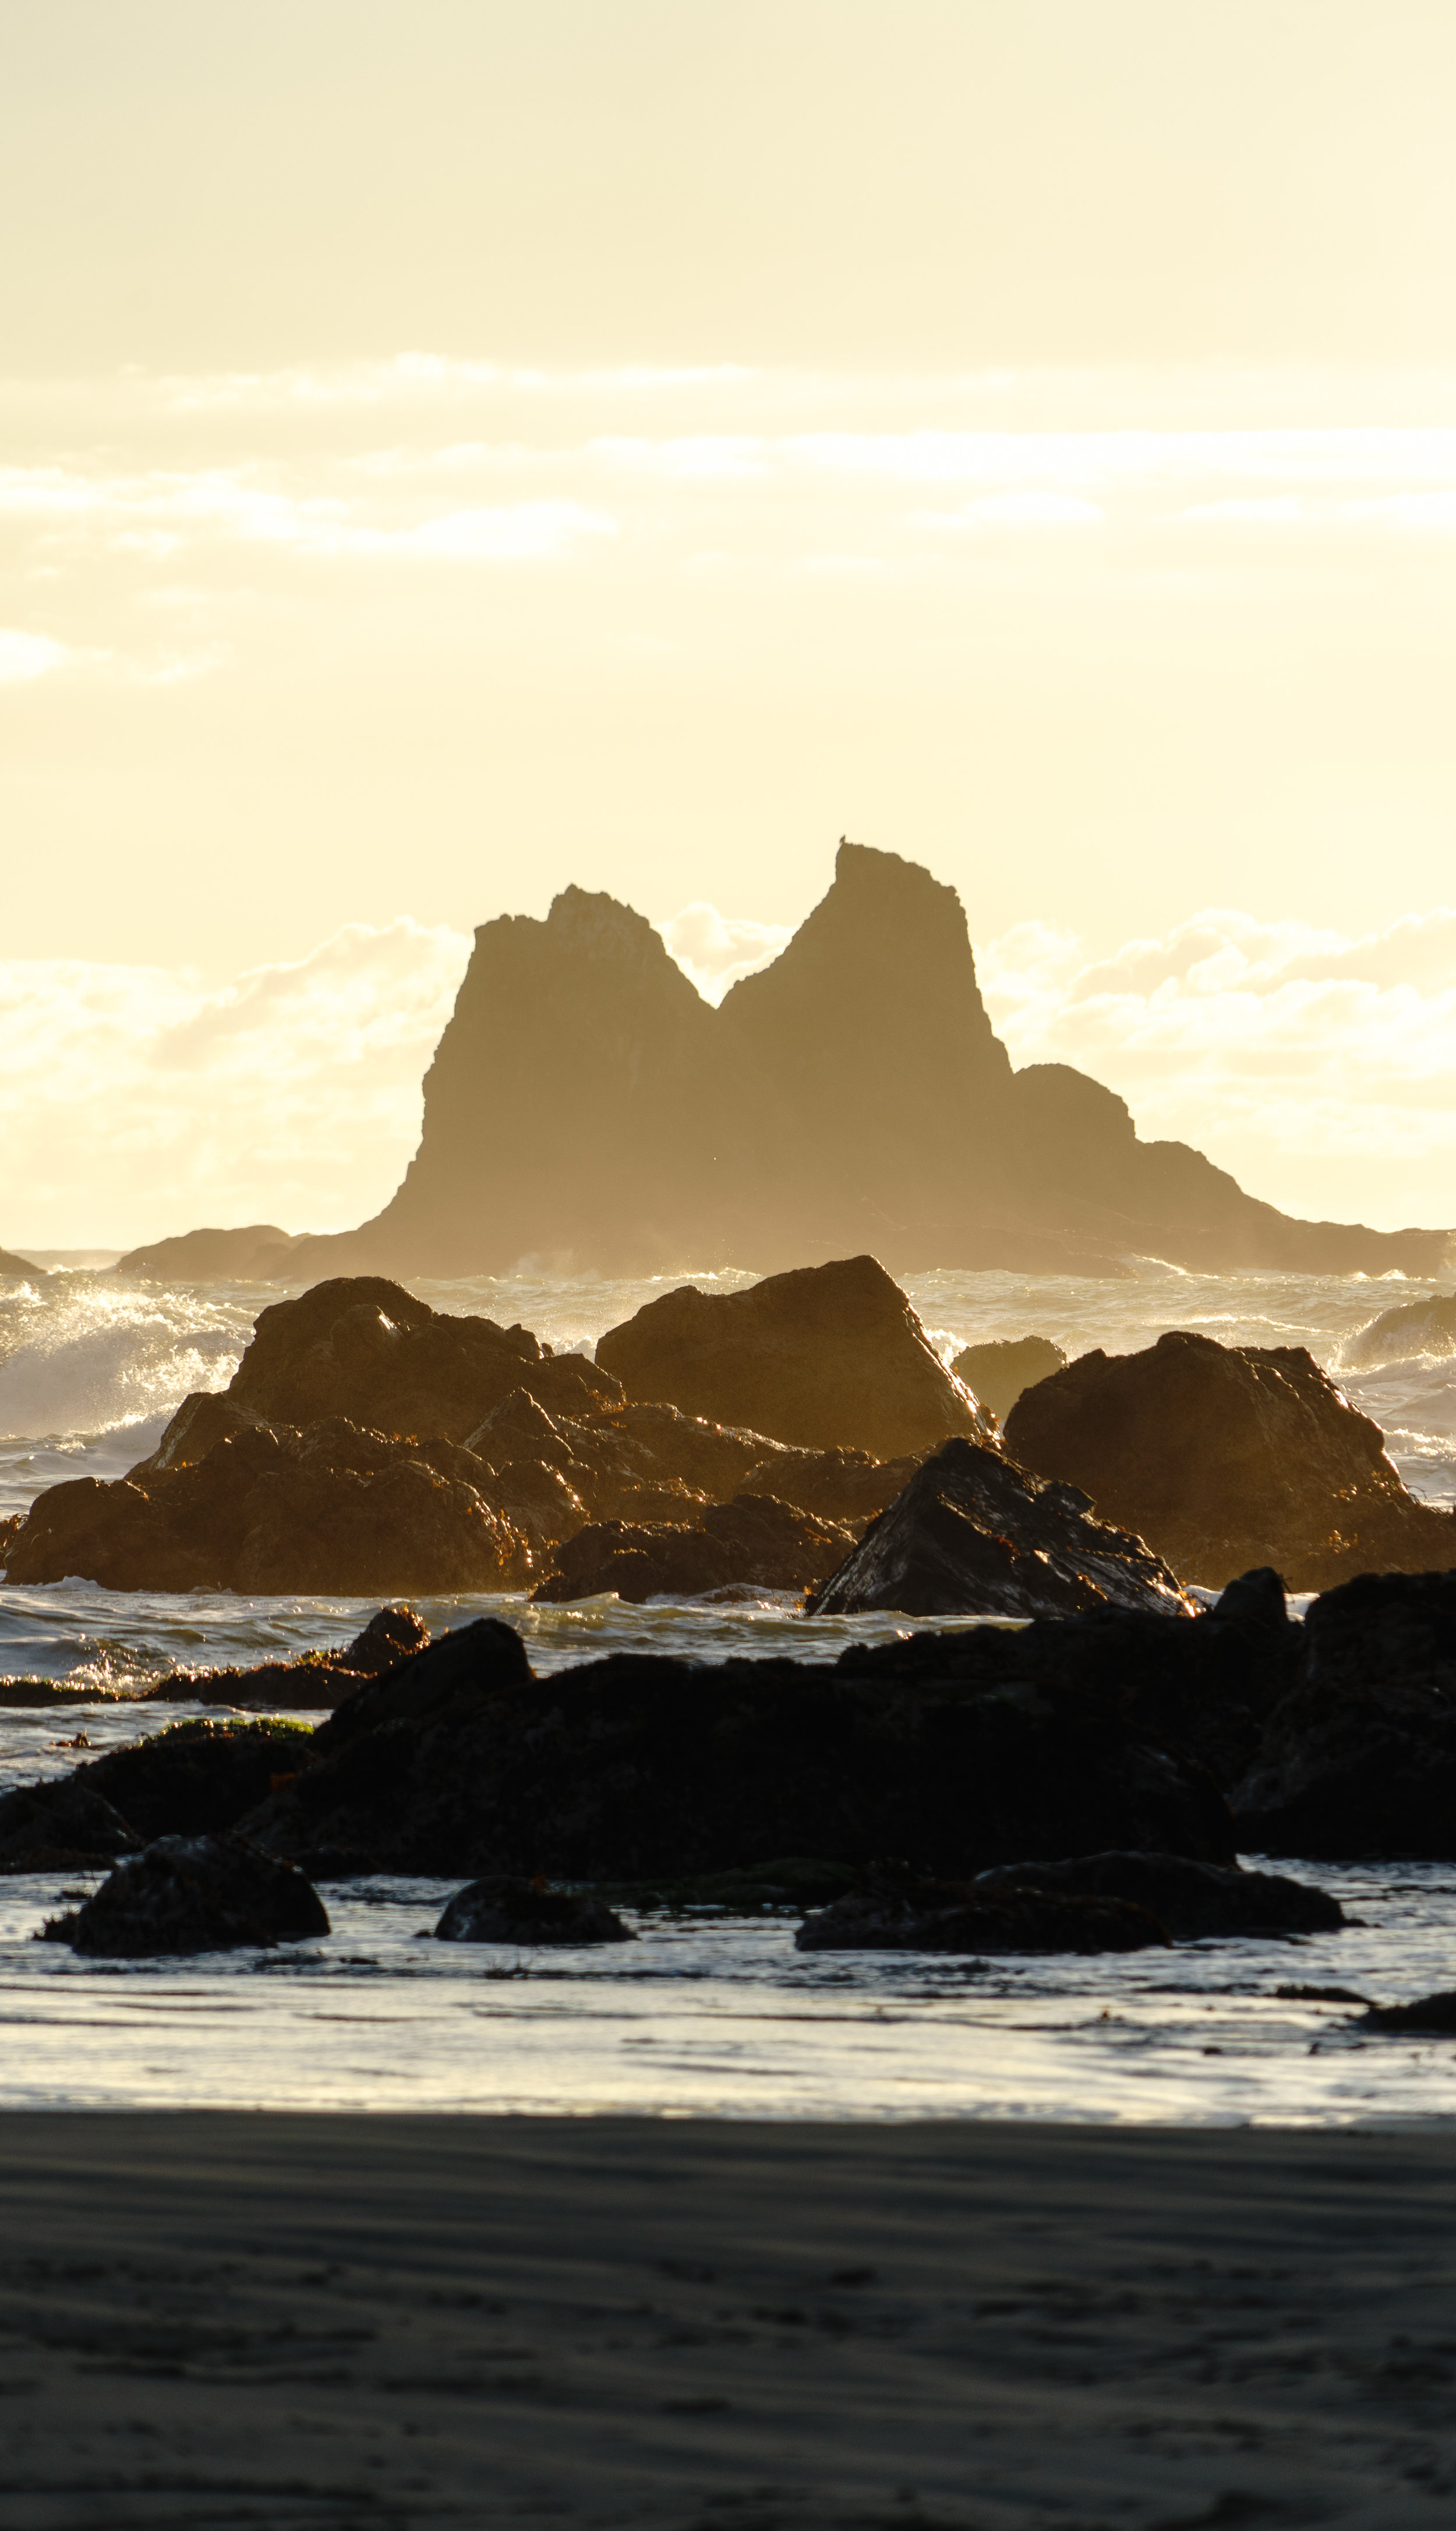 Then golden hour came. Sea stacks rose from the waves like mountains.